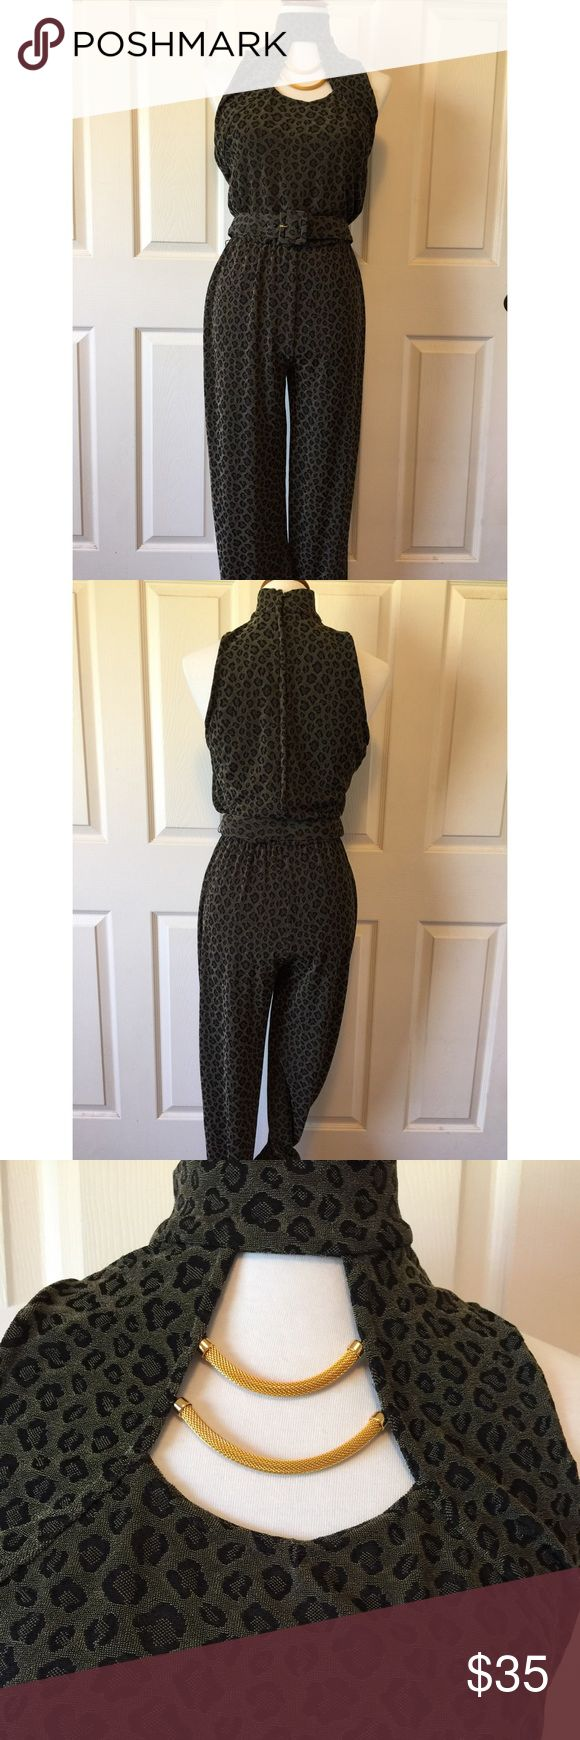 """PG COLLECTIONS JUMPSUIT Beautiful animal print on this jumpsuit from 🔹PG Collections Designed by Ginger Root, California. 🔹Excellent condition🔹Size 10: 38"""" bust, 60"""" long, 35"""" inseam, 30"""" elasticize waist 🔹Fabric:44% Nylon, 50% polyester, 6% spandex 🔹Dry clean only🔹No trades🔹Smoke free home🔹Bundle discount: 10% off two, 15% off three🔹Thank you for visiting💕 PG Collections Pants Jumpsuits & Rompers"""